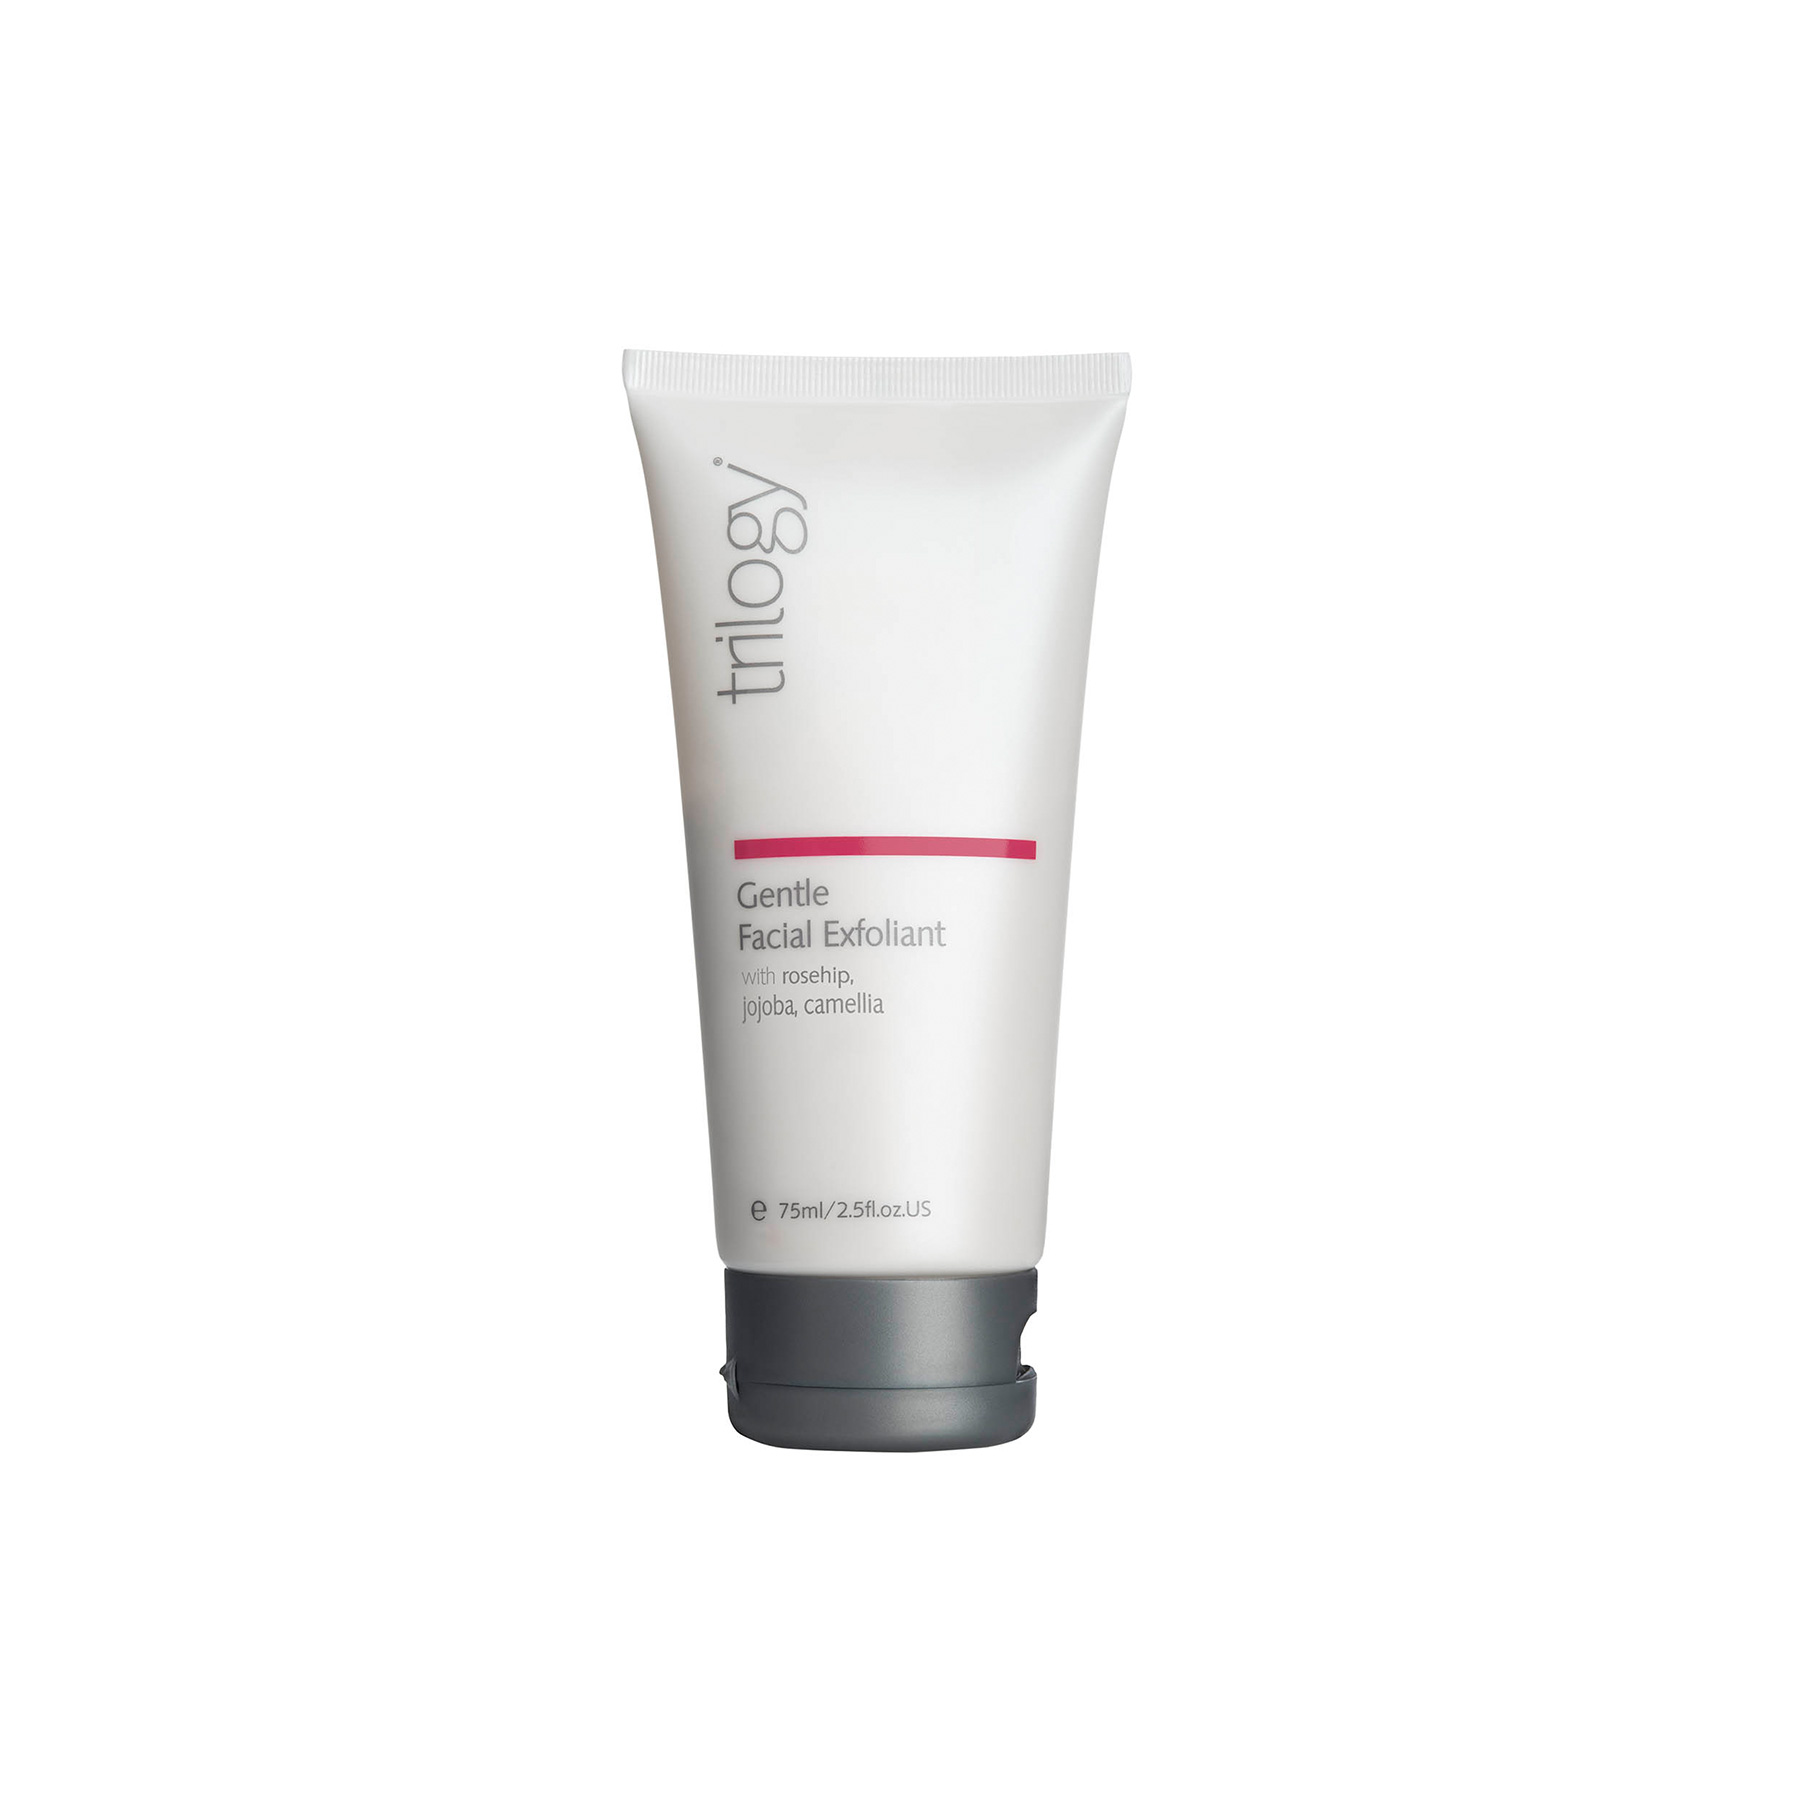 Gentle Facial Exfoliant • $39   Gentle, sensitive-skin friendly  Jojoba wax spheres take away surface buildup, and leave skin softer and smoother.